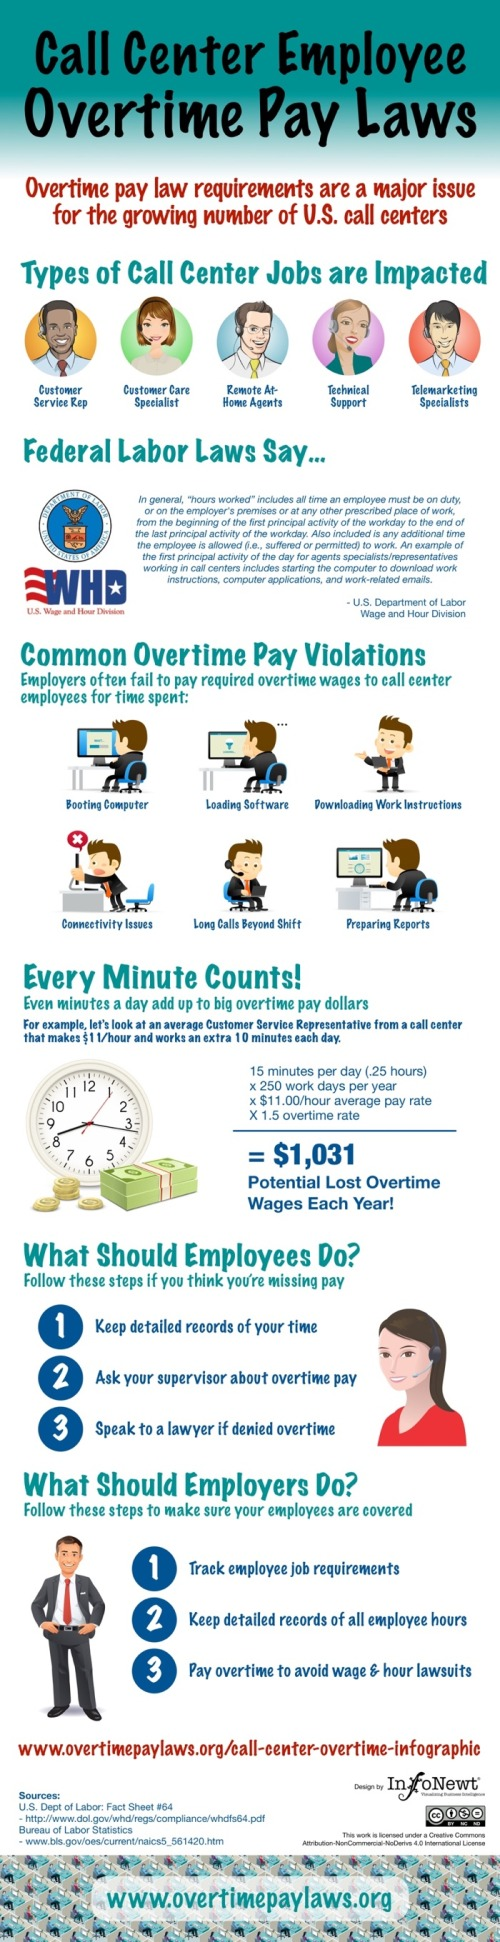 Overtime Pay Laws infographic